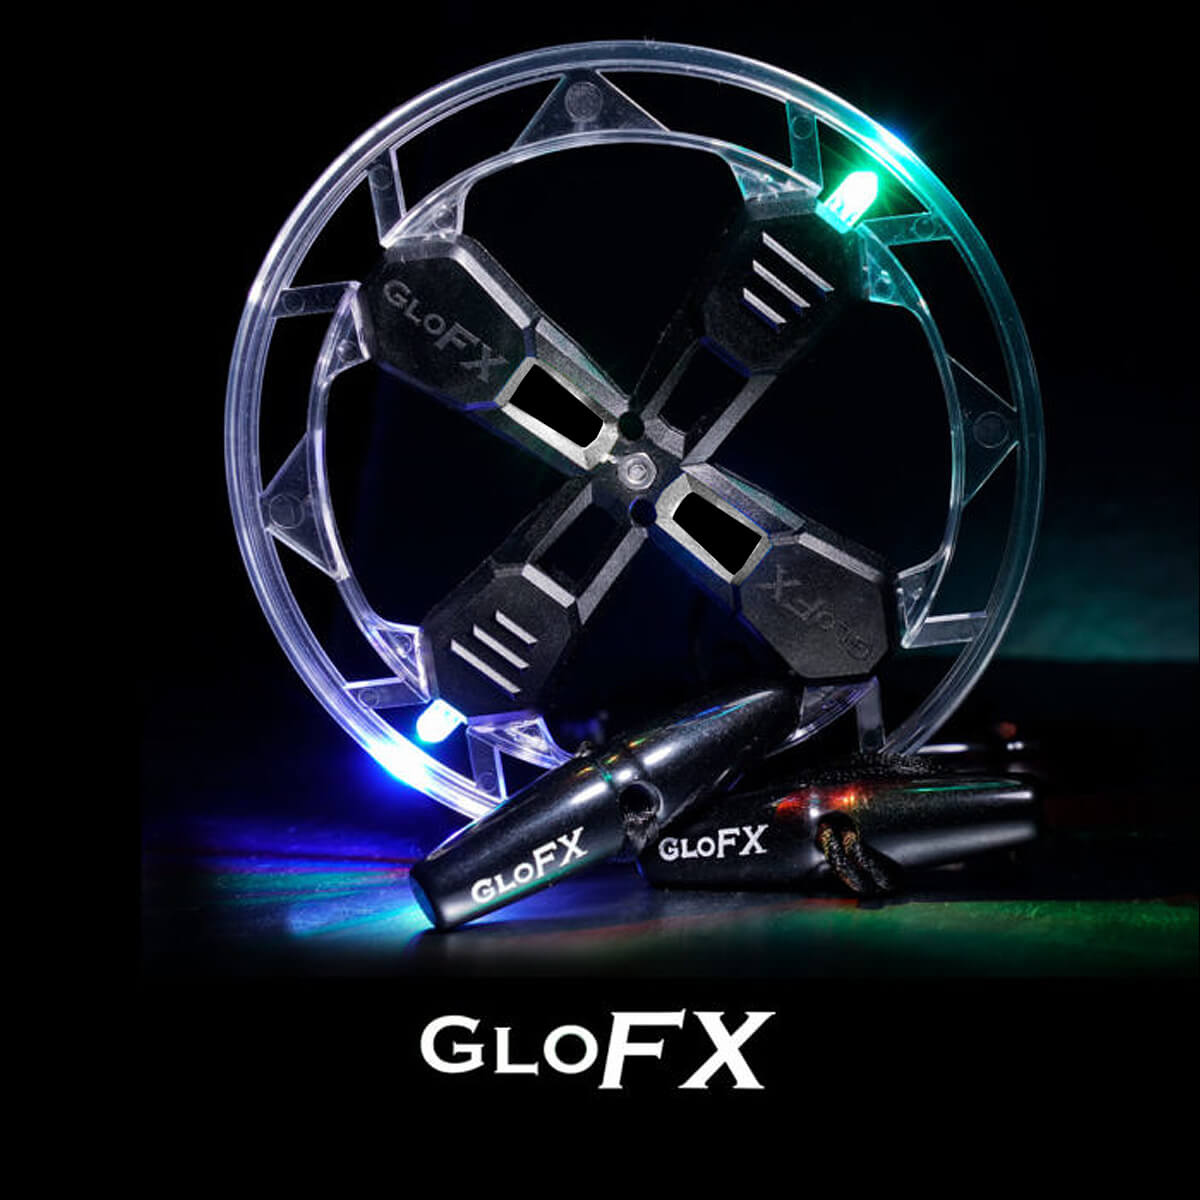 GloFX_2-LED_Lux_360_Orbit_Featured_Image_1